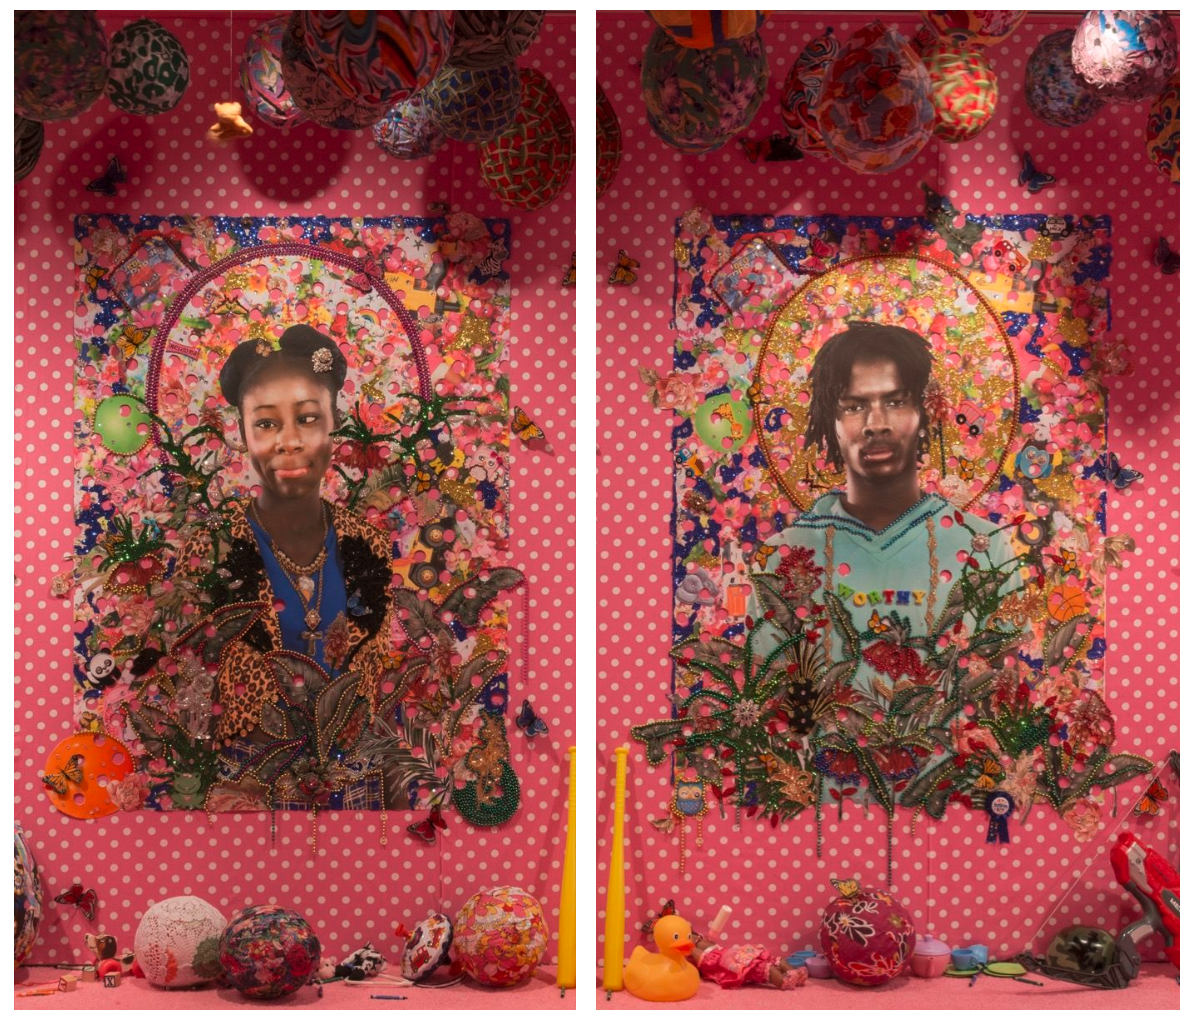 """Installation view of Ebony G .  Patterson , 18,  2016 , in  """" . . . when they grow up . . .,"""" at The Studio Museum Harlem, 2016. Courtesy of the artist and Monique Meloche Gallery, Chicago.  Installation view of Ebony G. Patterson , 14, 2016 , in  """"  . . . when they grow up . . .,"""" at The Studio Museum Harlem, 2016. Courtesy of the artist and Monique Meloche Gallery, Chicago."""